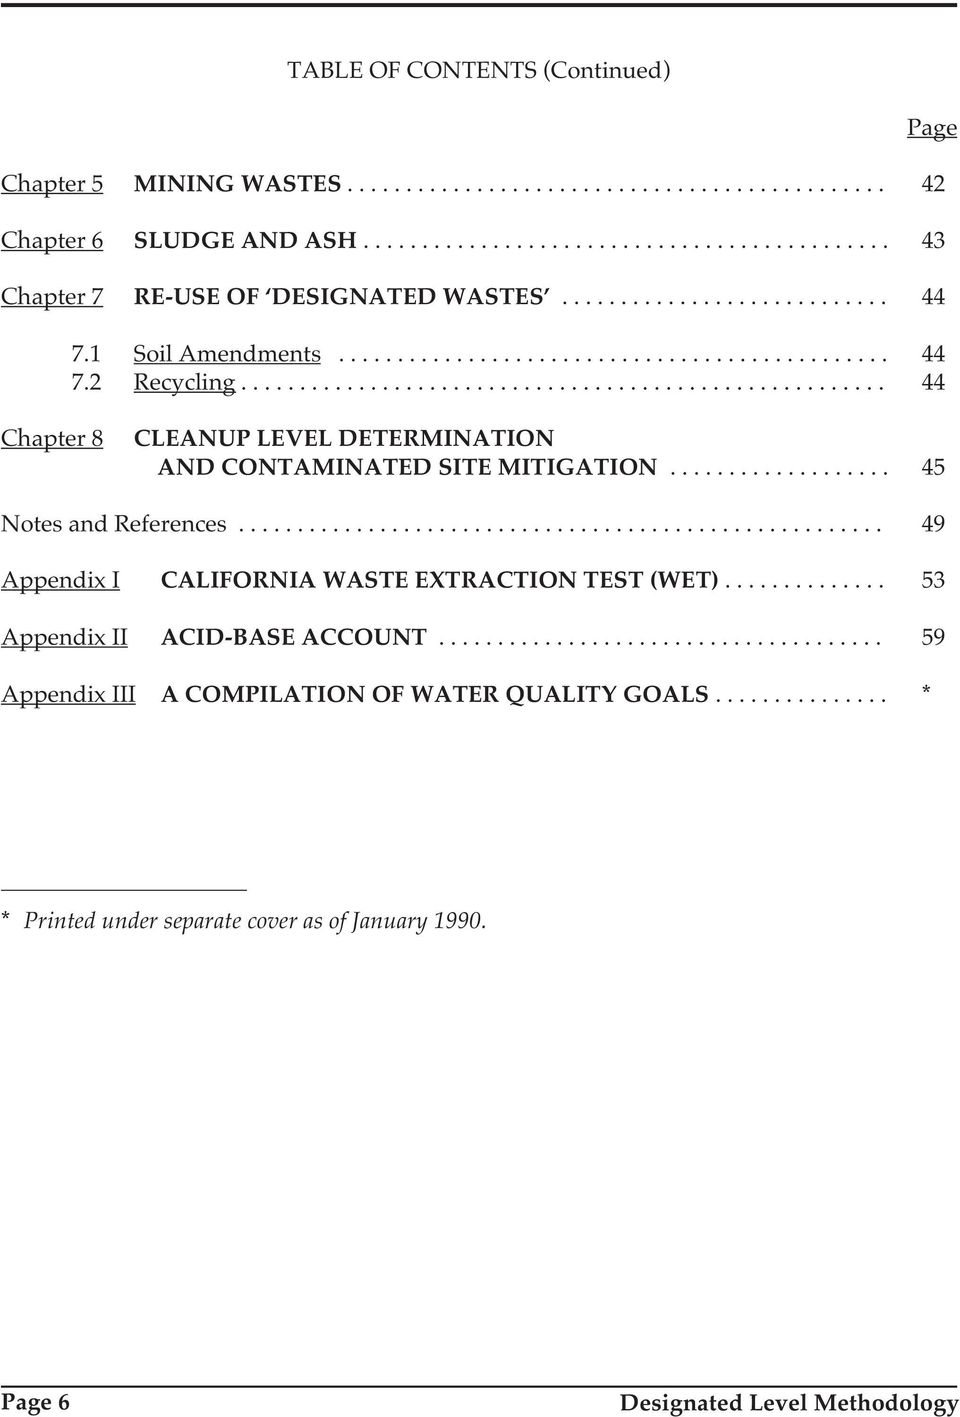 .................. 45 Notes and References....................................................... 49 Appendix I CALIFORNIA WASTE EXTRACTION TEST (WET).............. 53 Appendix II ACID-BASE ACCOUNT.